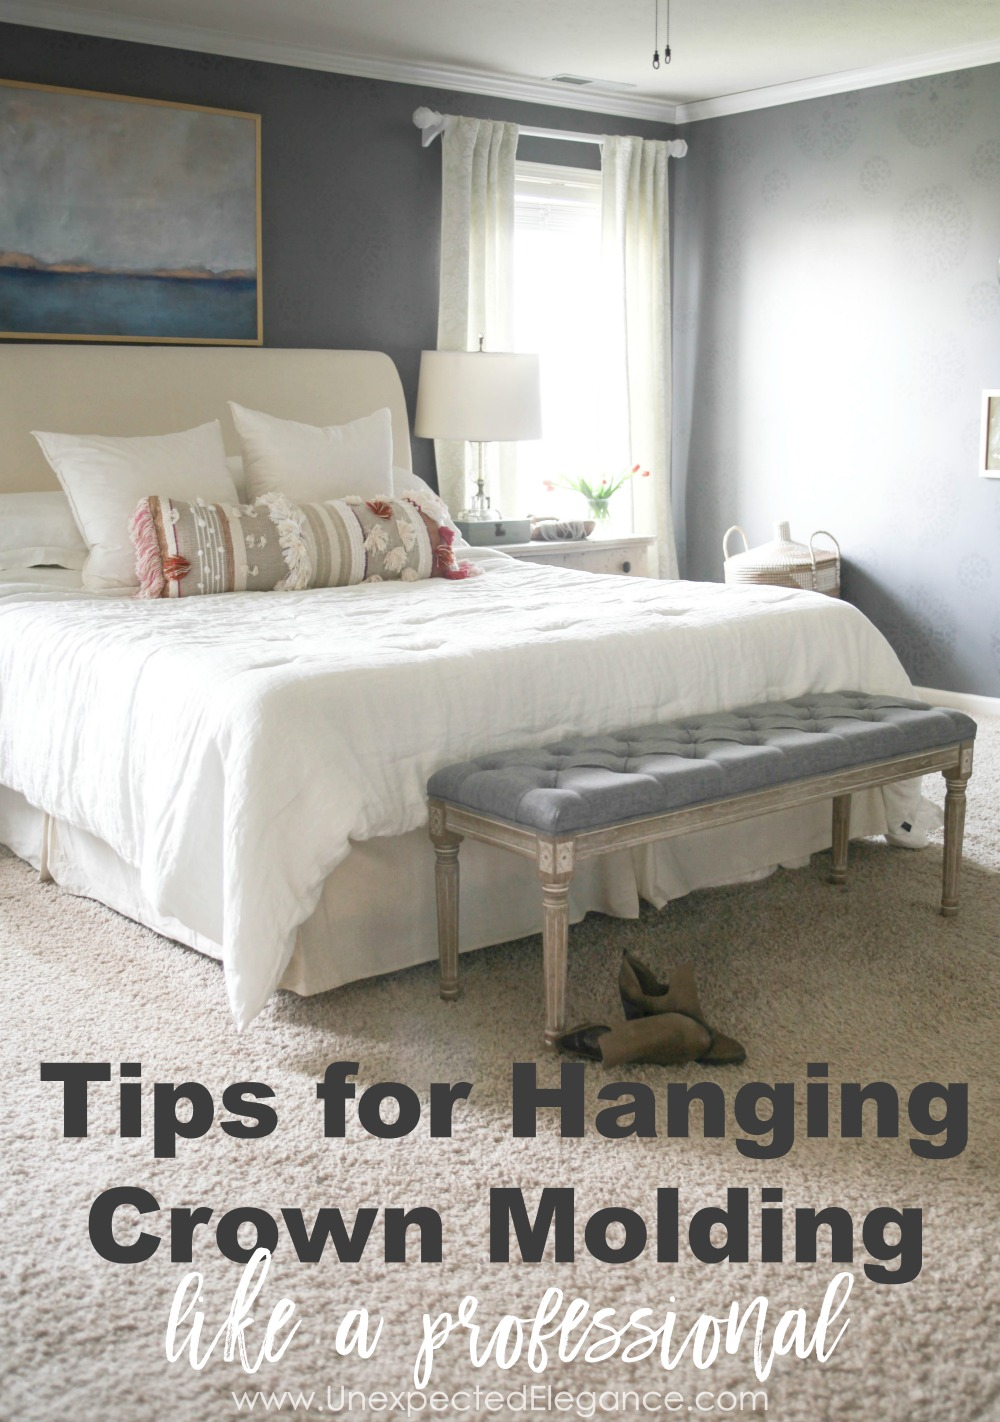 Get some tips for hanging crown molding, so you can get the professional finish. Best part is you will save some money!